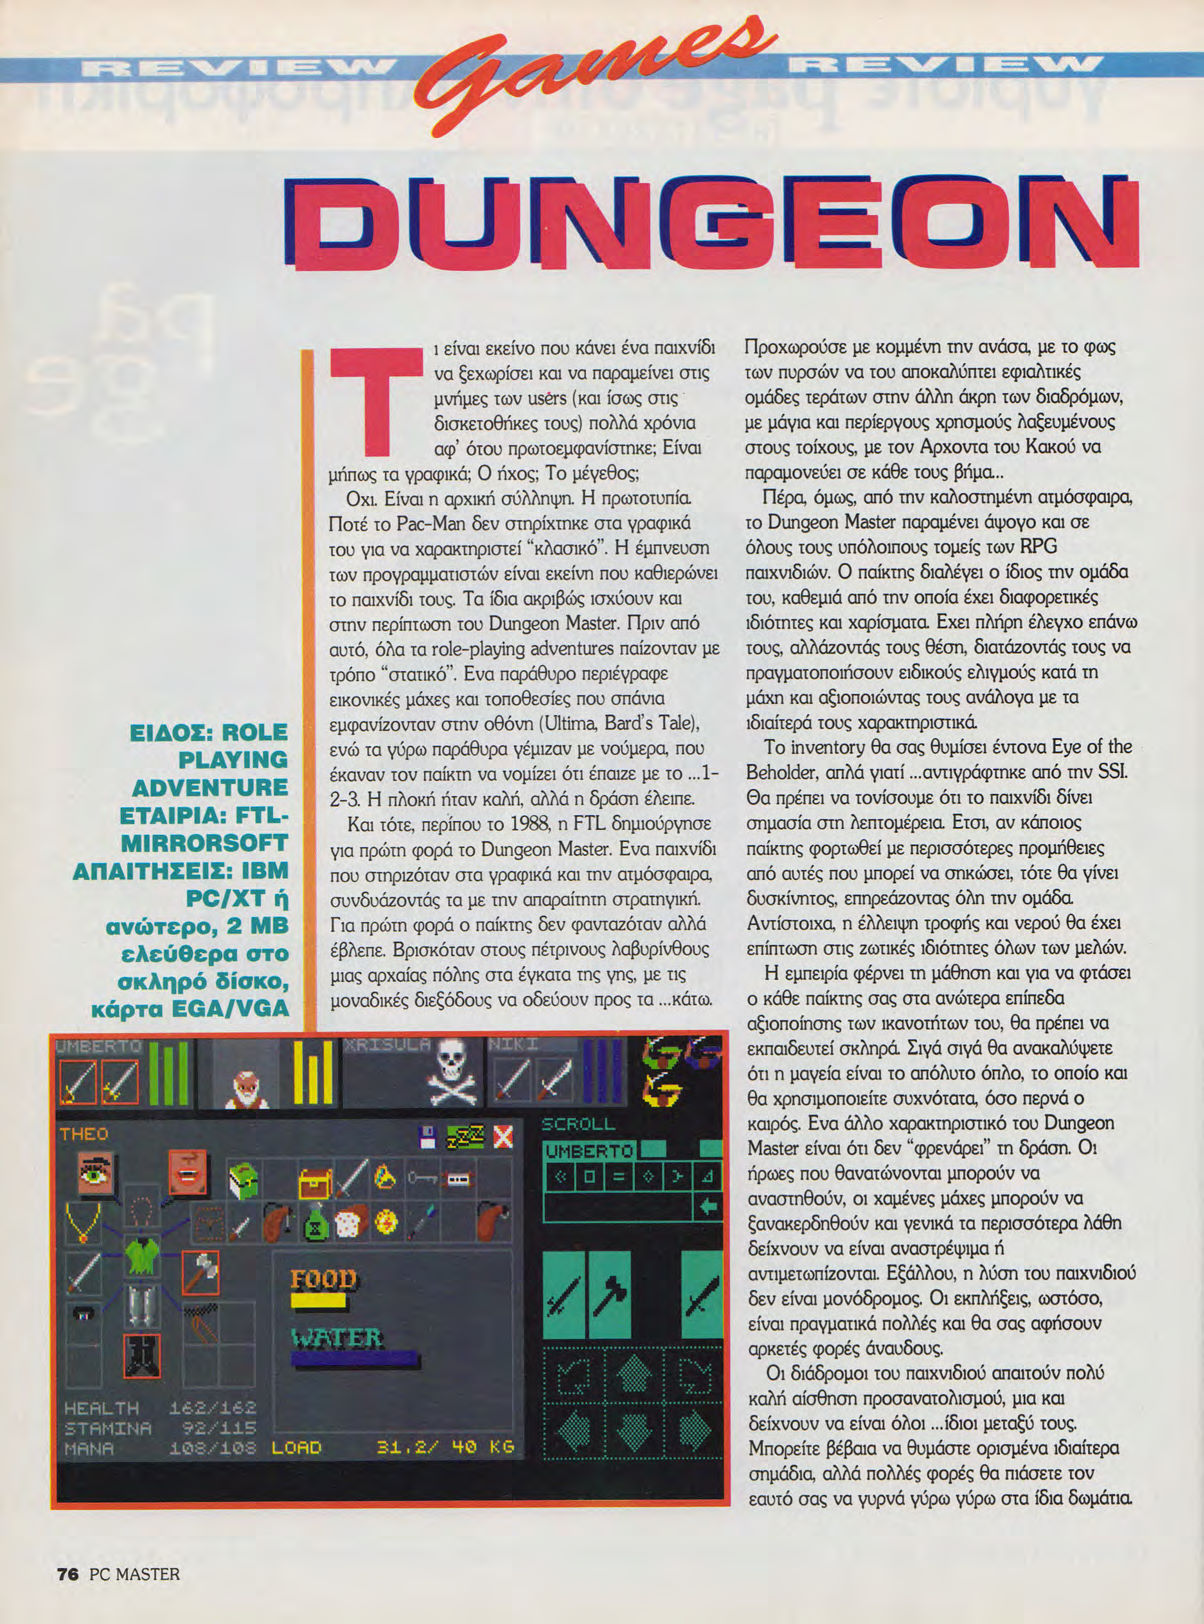 Dungeon Master for PC Review published in Greek magazine 'PC Master', Issue #34 November 1992, Page 76